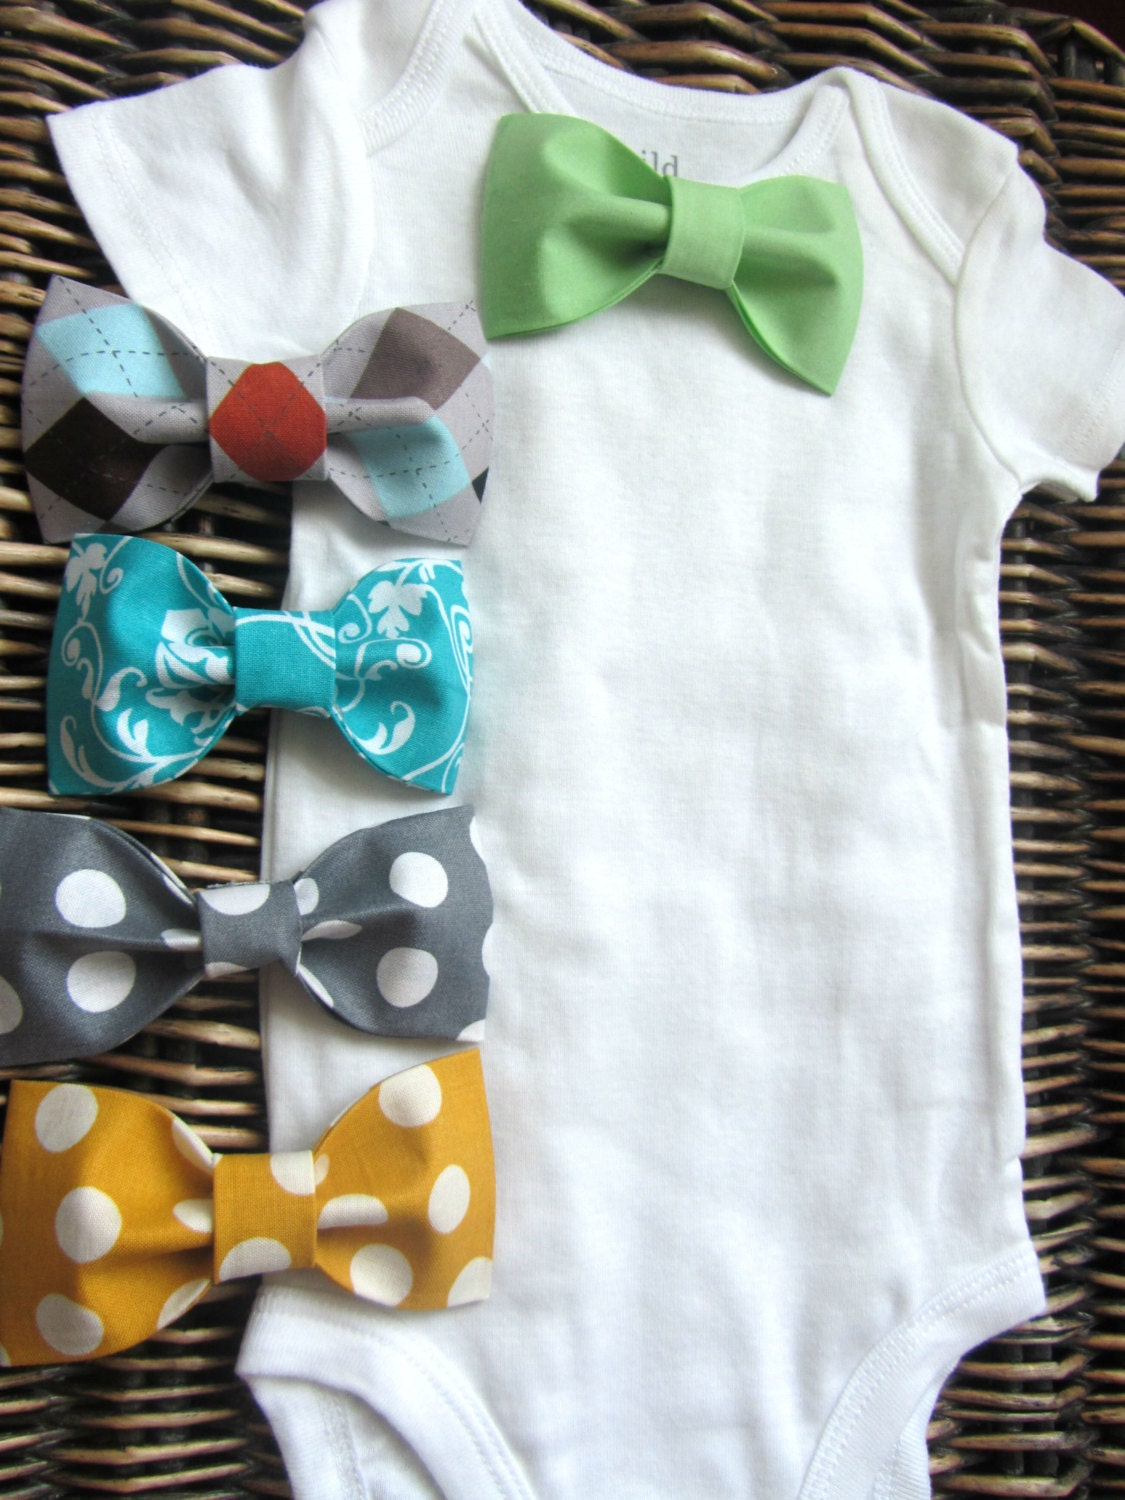 Baby Boy Coming Home Outfit, Baby Bow Tie Outfit, Monogrammed Baby Boy, Newborn Personalized Baby Take Home Outfit, Baby Gift LolliPopKidsDesigns. 5 out of 5 stars (1,) $ Eligible orders ship free Favorite Add to See similar items + More like.